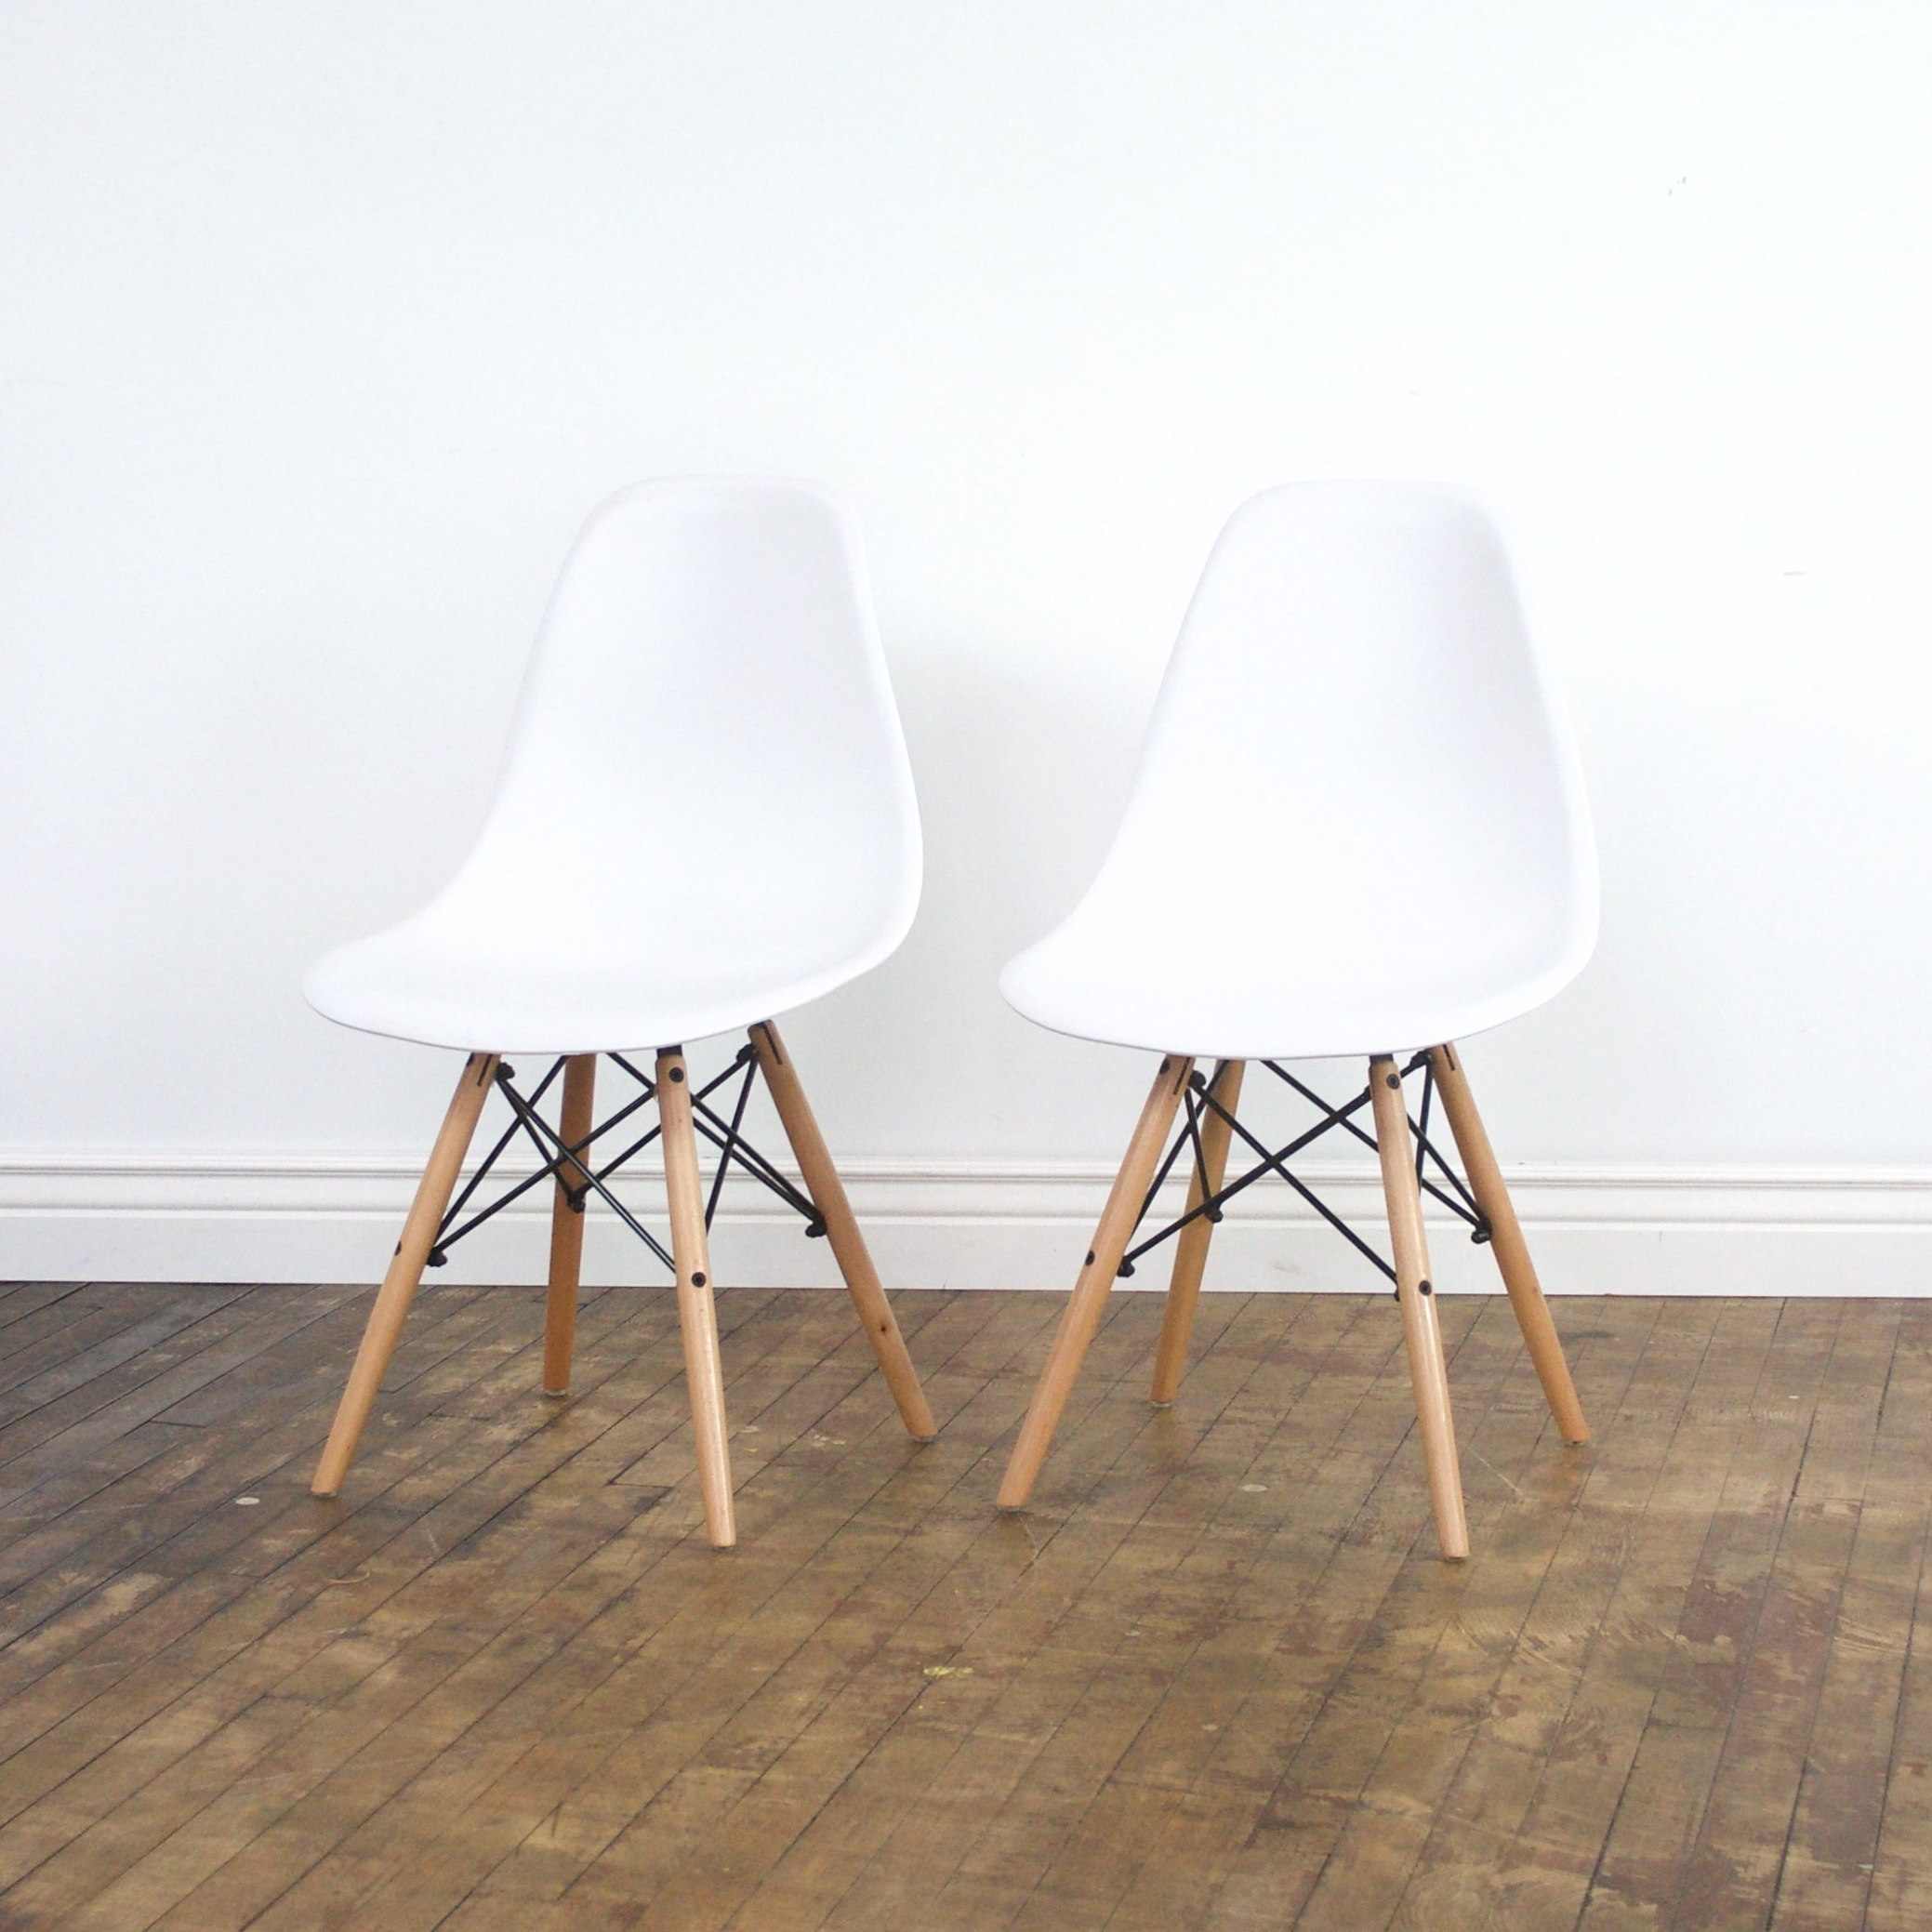 Sprack Chairs (8 available)    $20 each